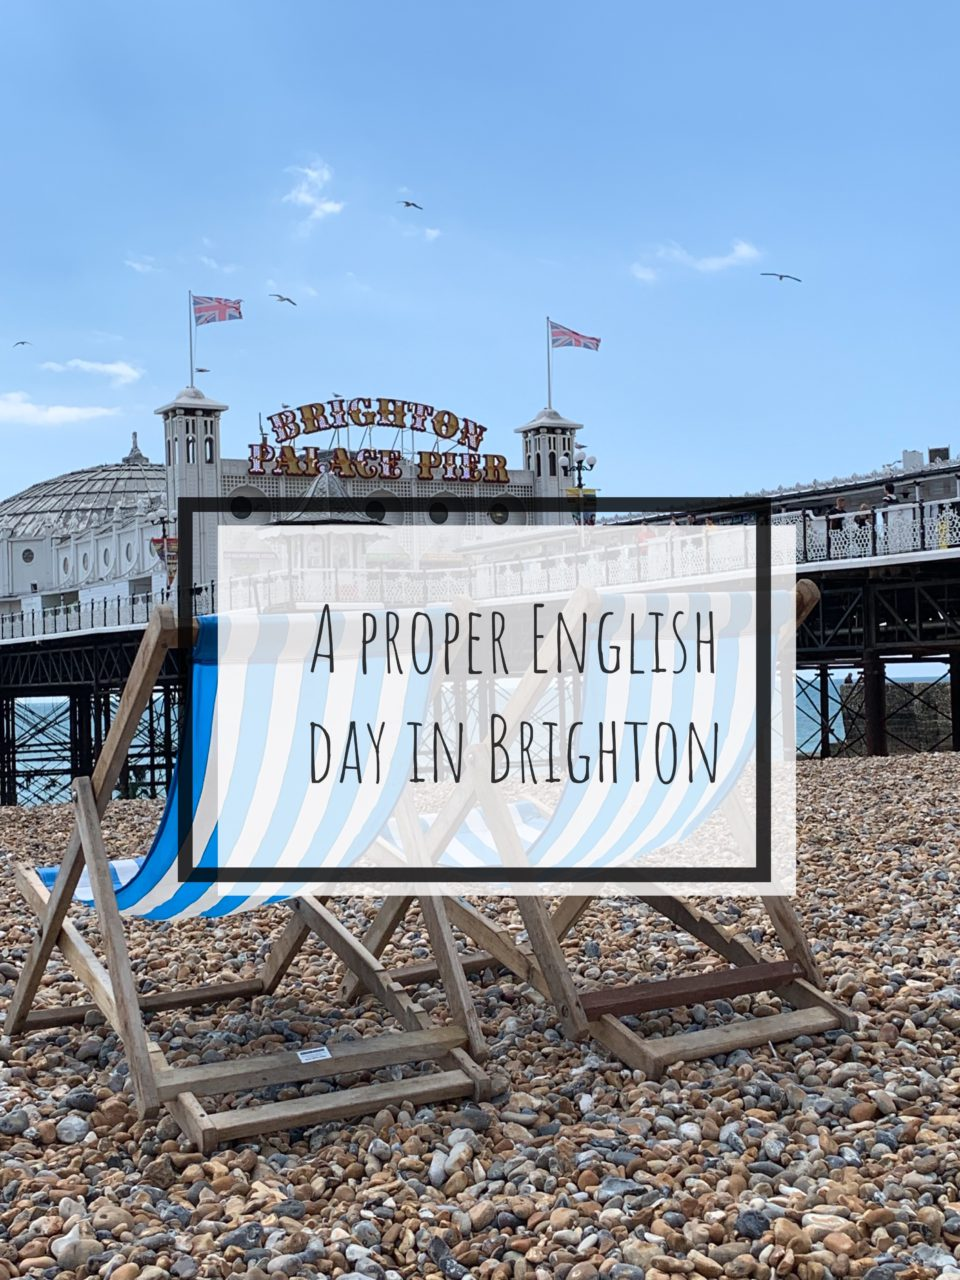 A proper English day in Brighton